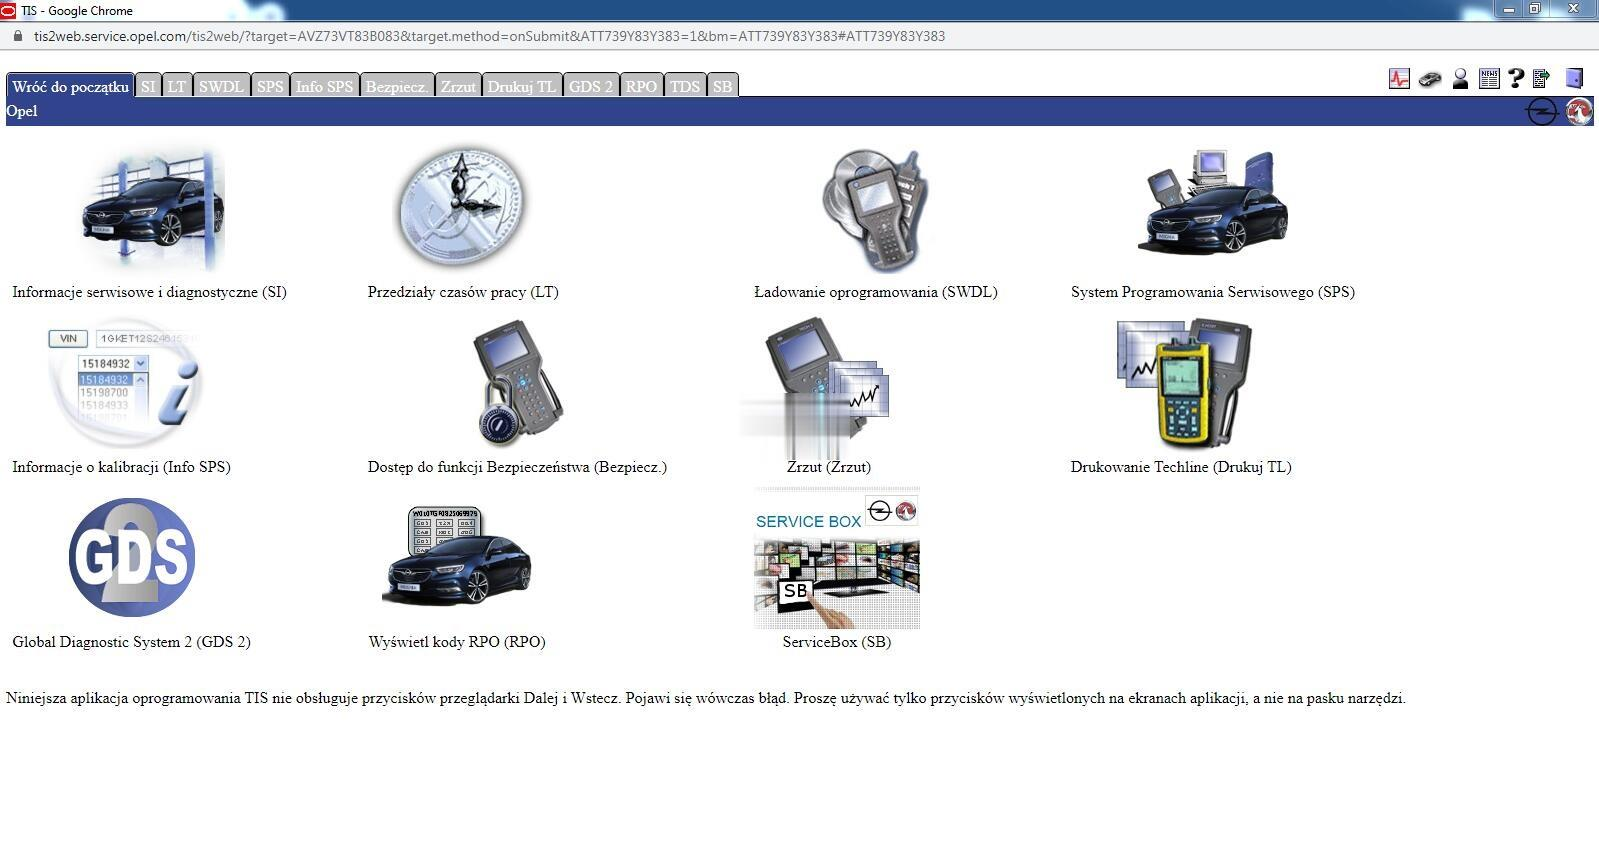 Gm-Mdi-2-Is-Compatible-With-Original-Gds2-Software-2 (2)